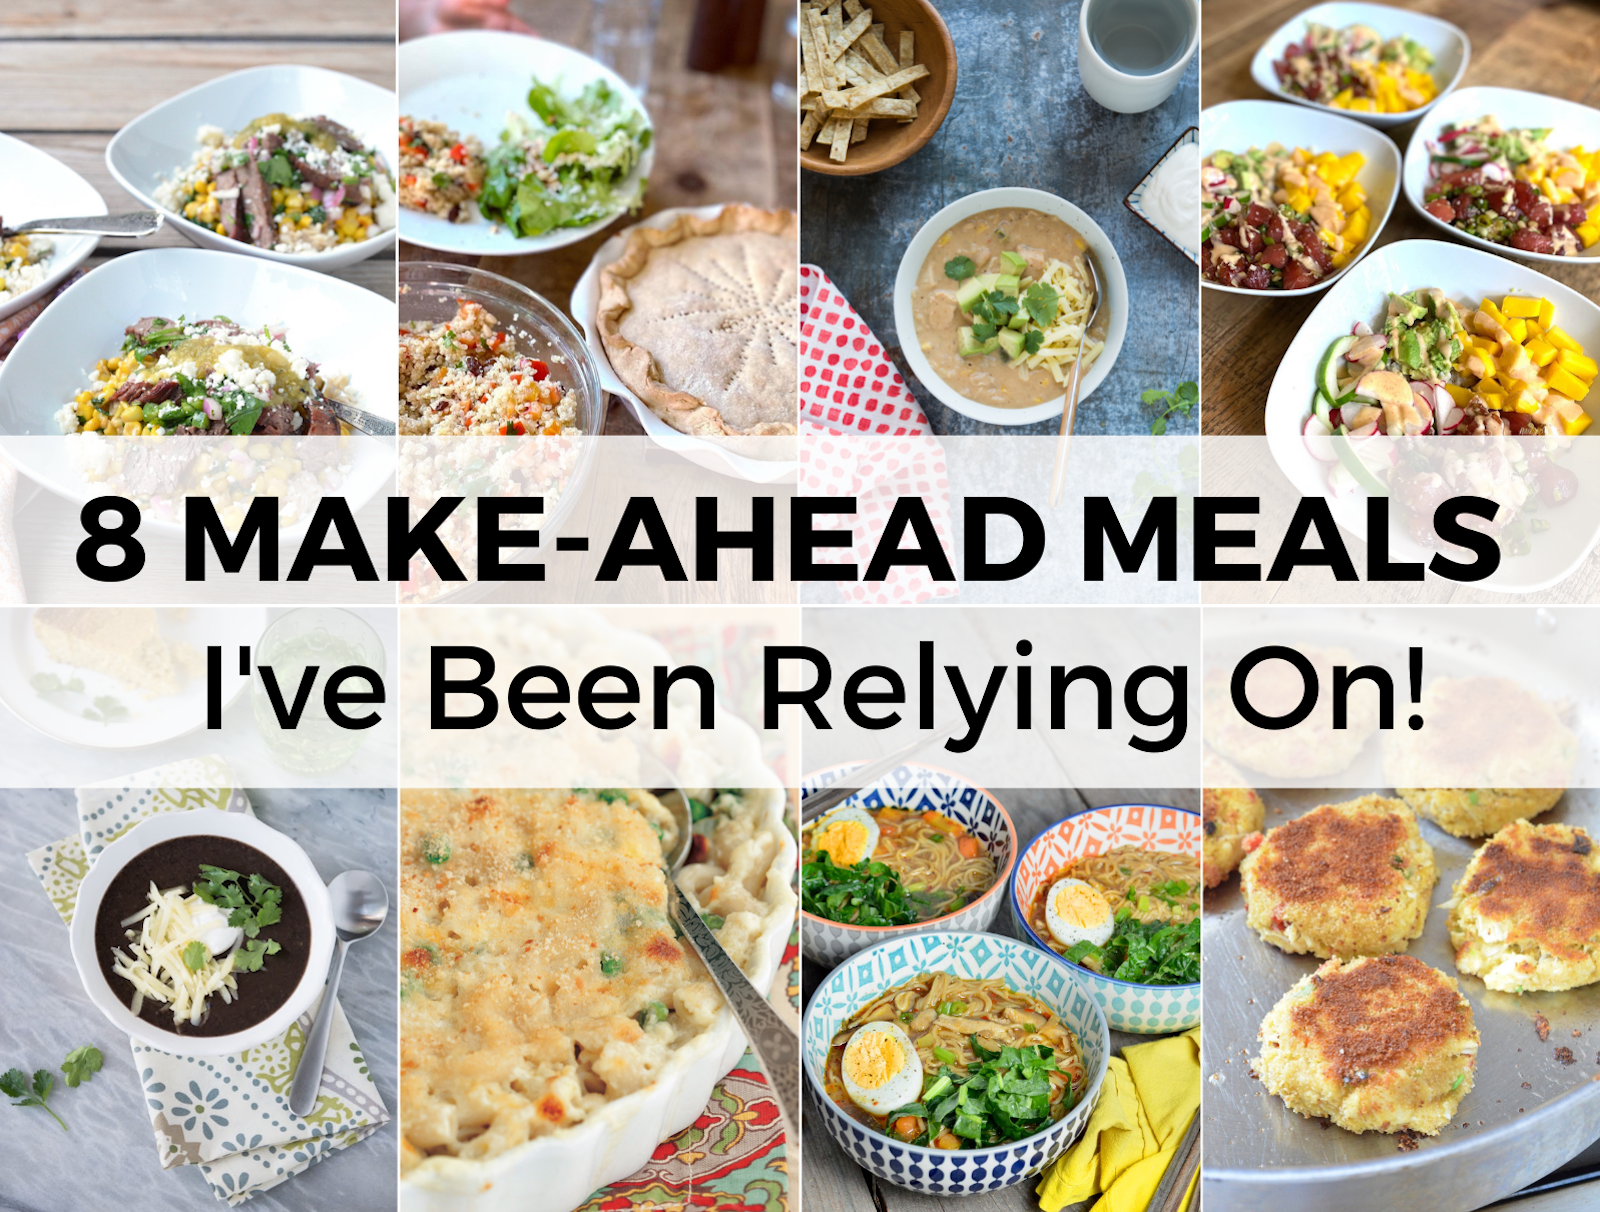 8 images of make-ahead meals.